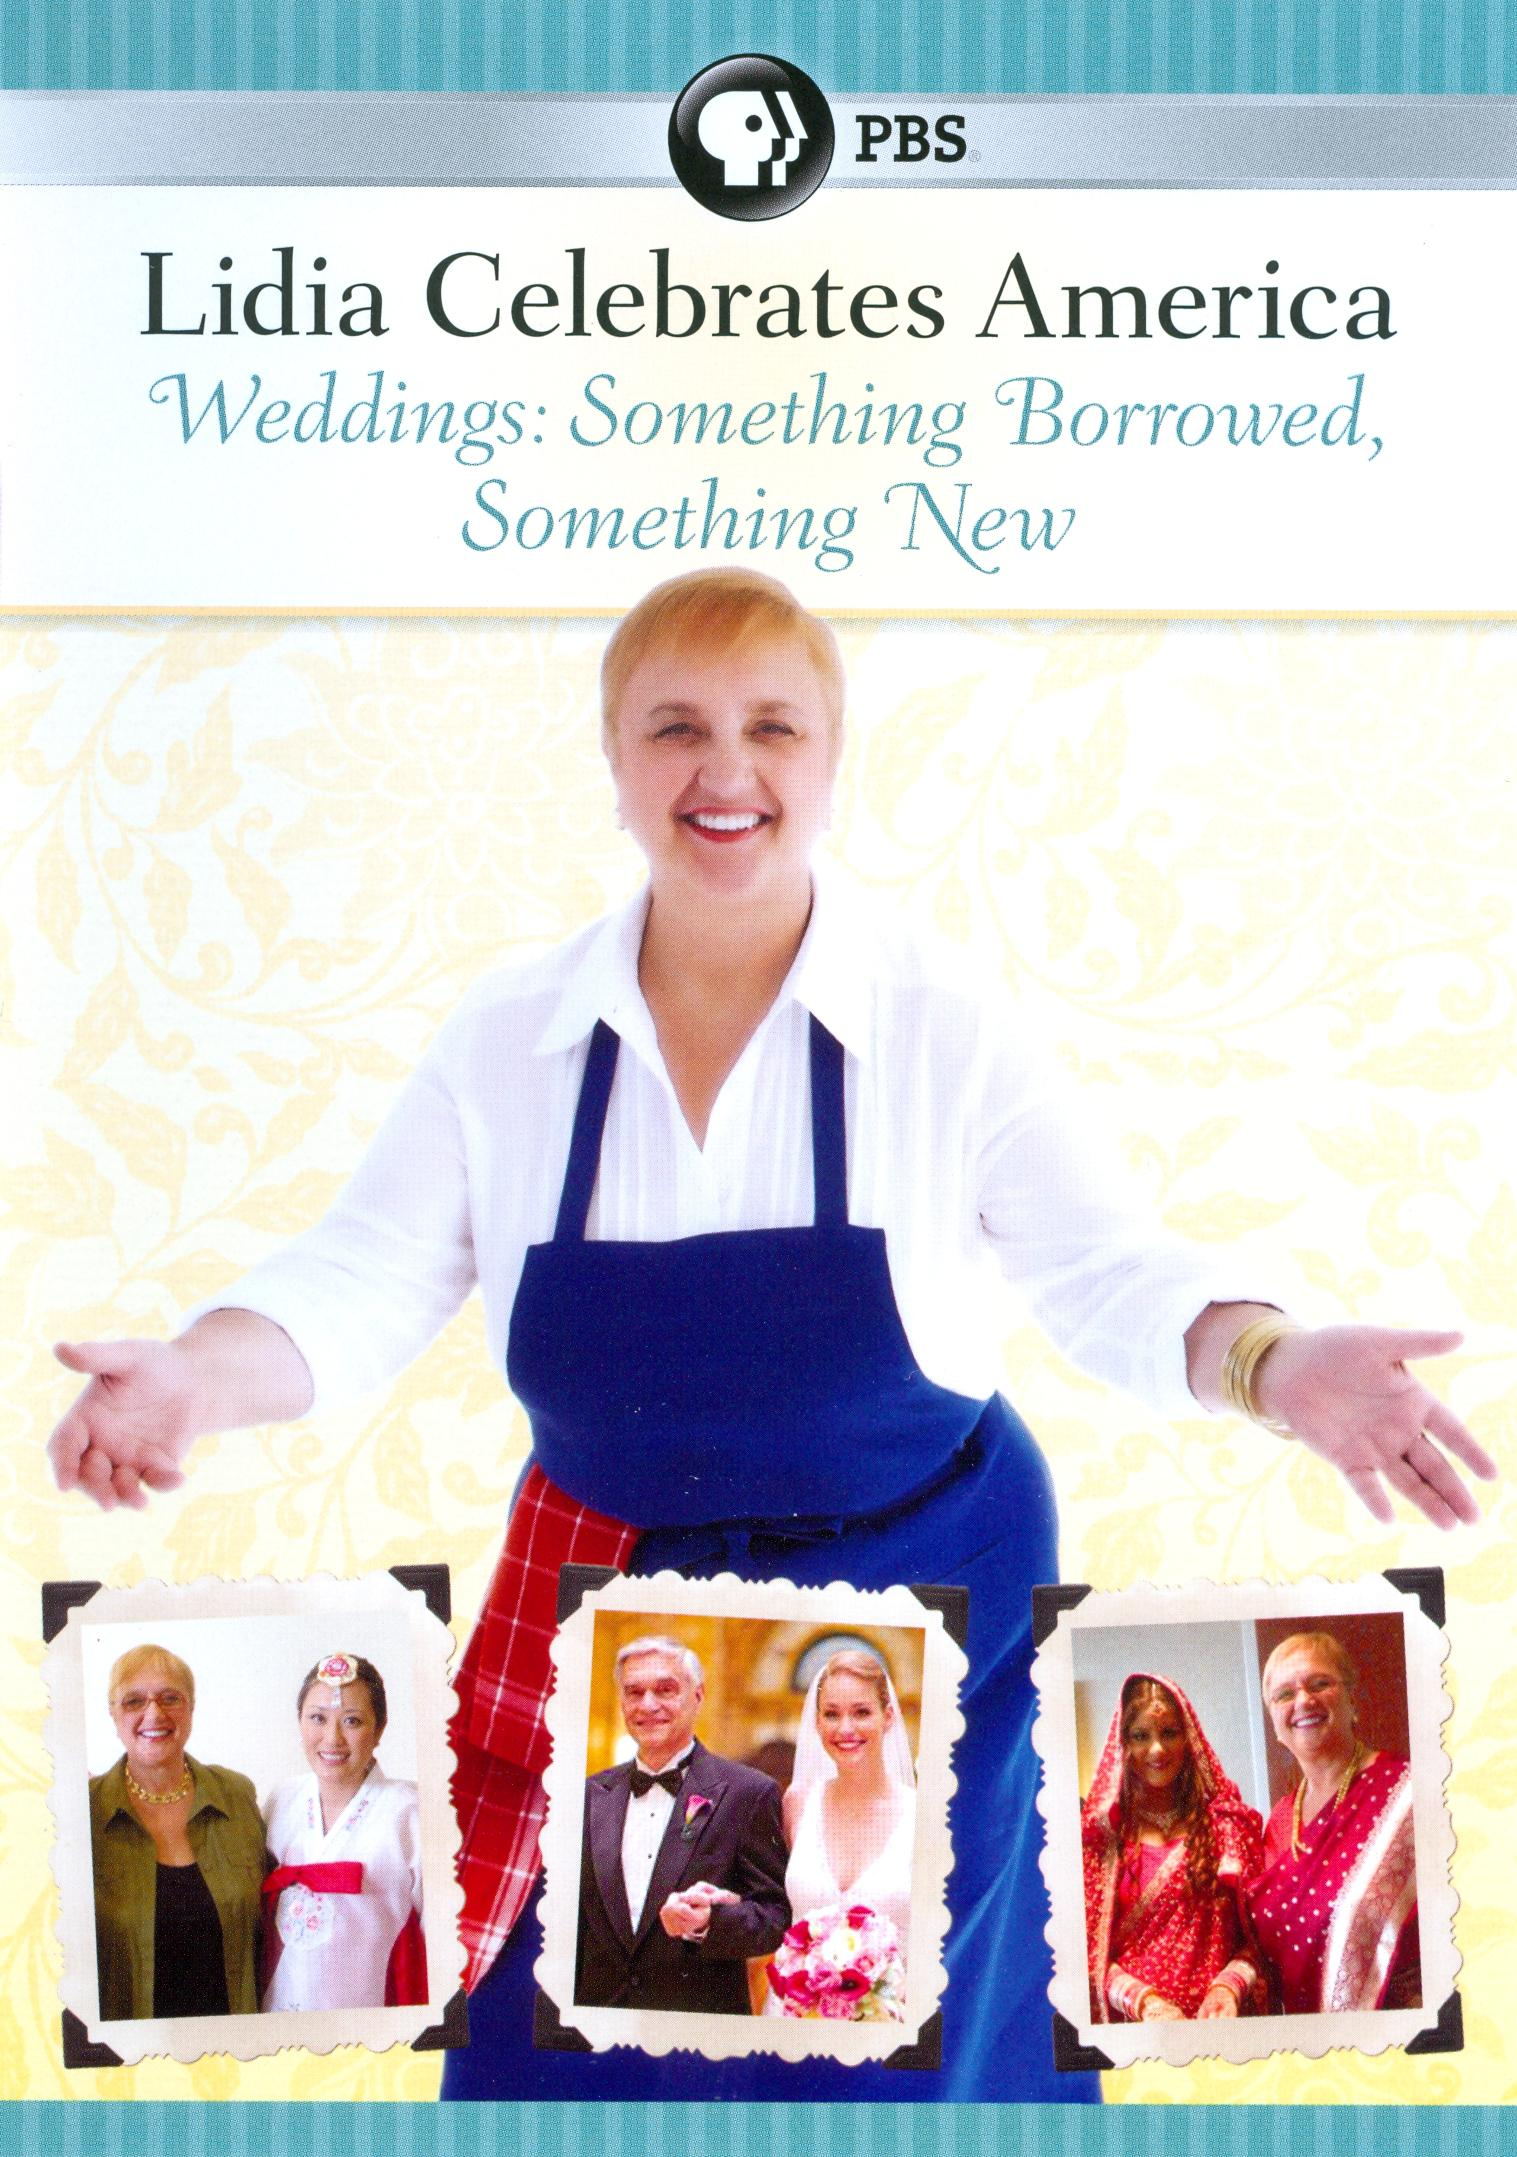 Lidia Celebrates America: Weddings - Something Borrowed, Something New